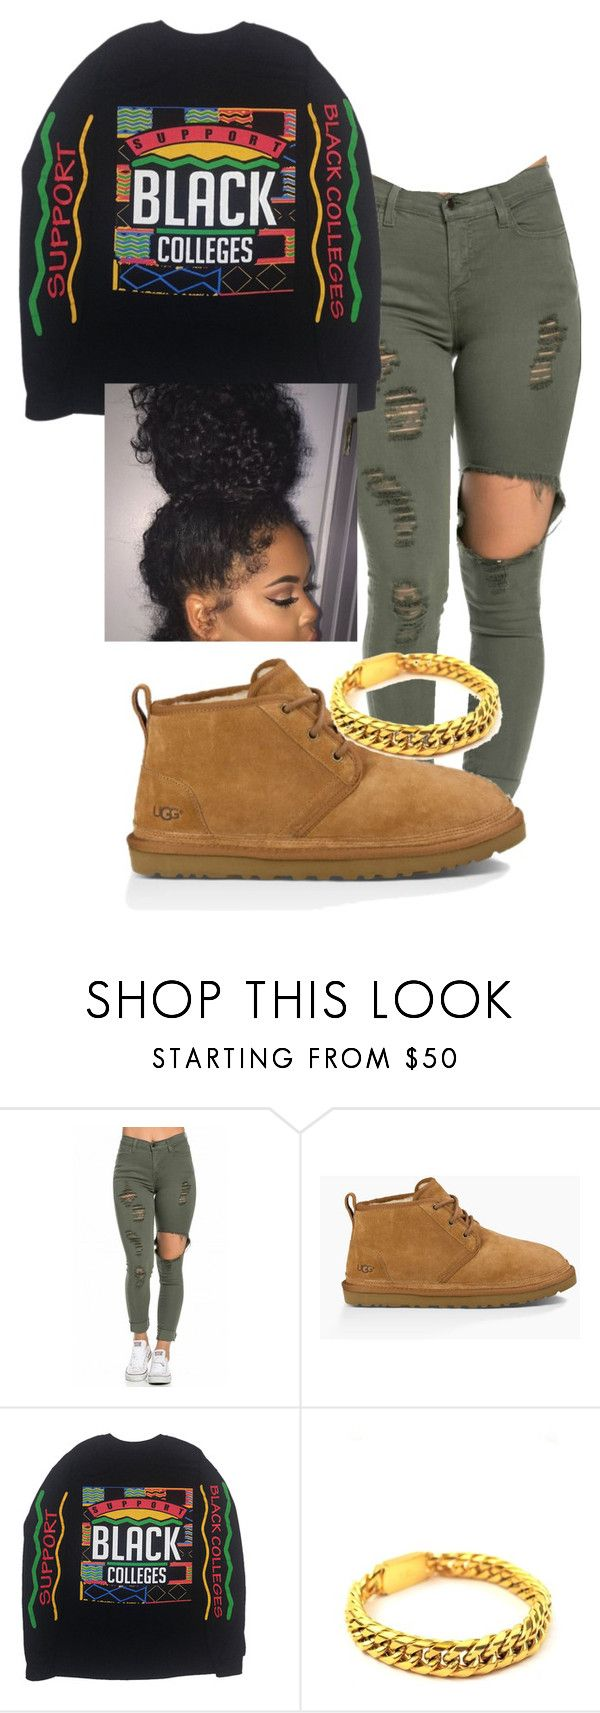 class by gibsond935 on Polyvore featuring UGG Australia